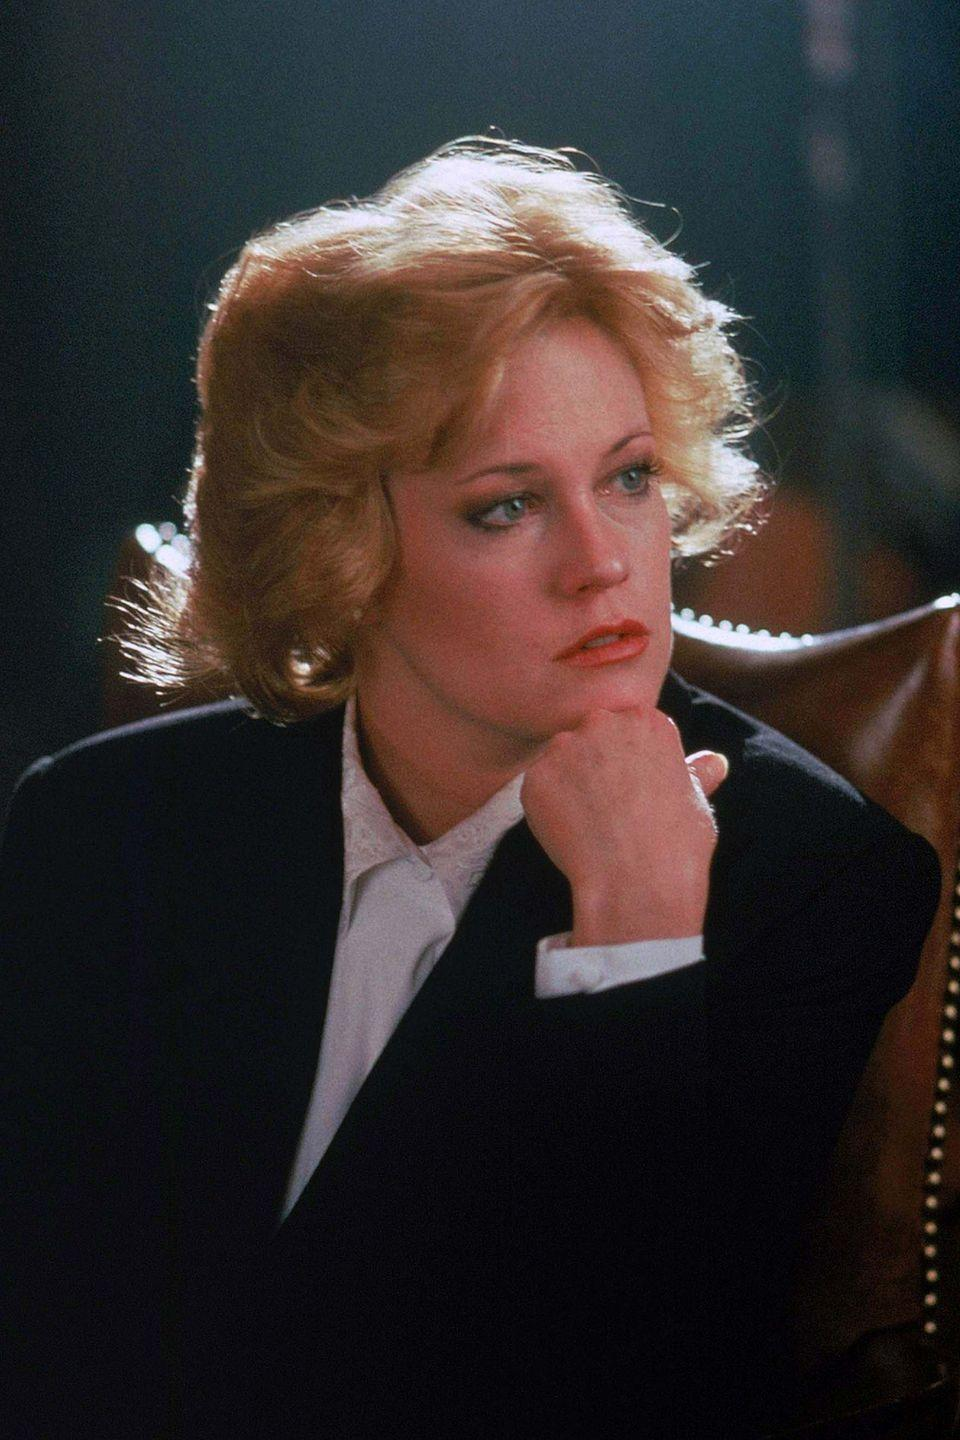 <p>If you plan to power dress your way into a post-lockdown office (and, after a year of sweatpants, who would blame you?), there could be no greater inspiration for this than perhaps the most famous shoulder pads in movie history, those which belong to Melanie Griffith's character Tess in Working Girl. We do suggest you dial it back slightly though.</p>